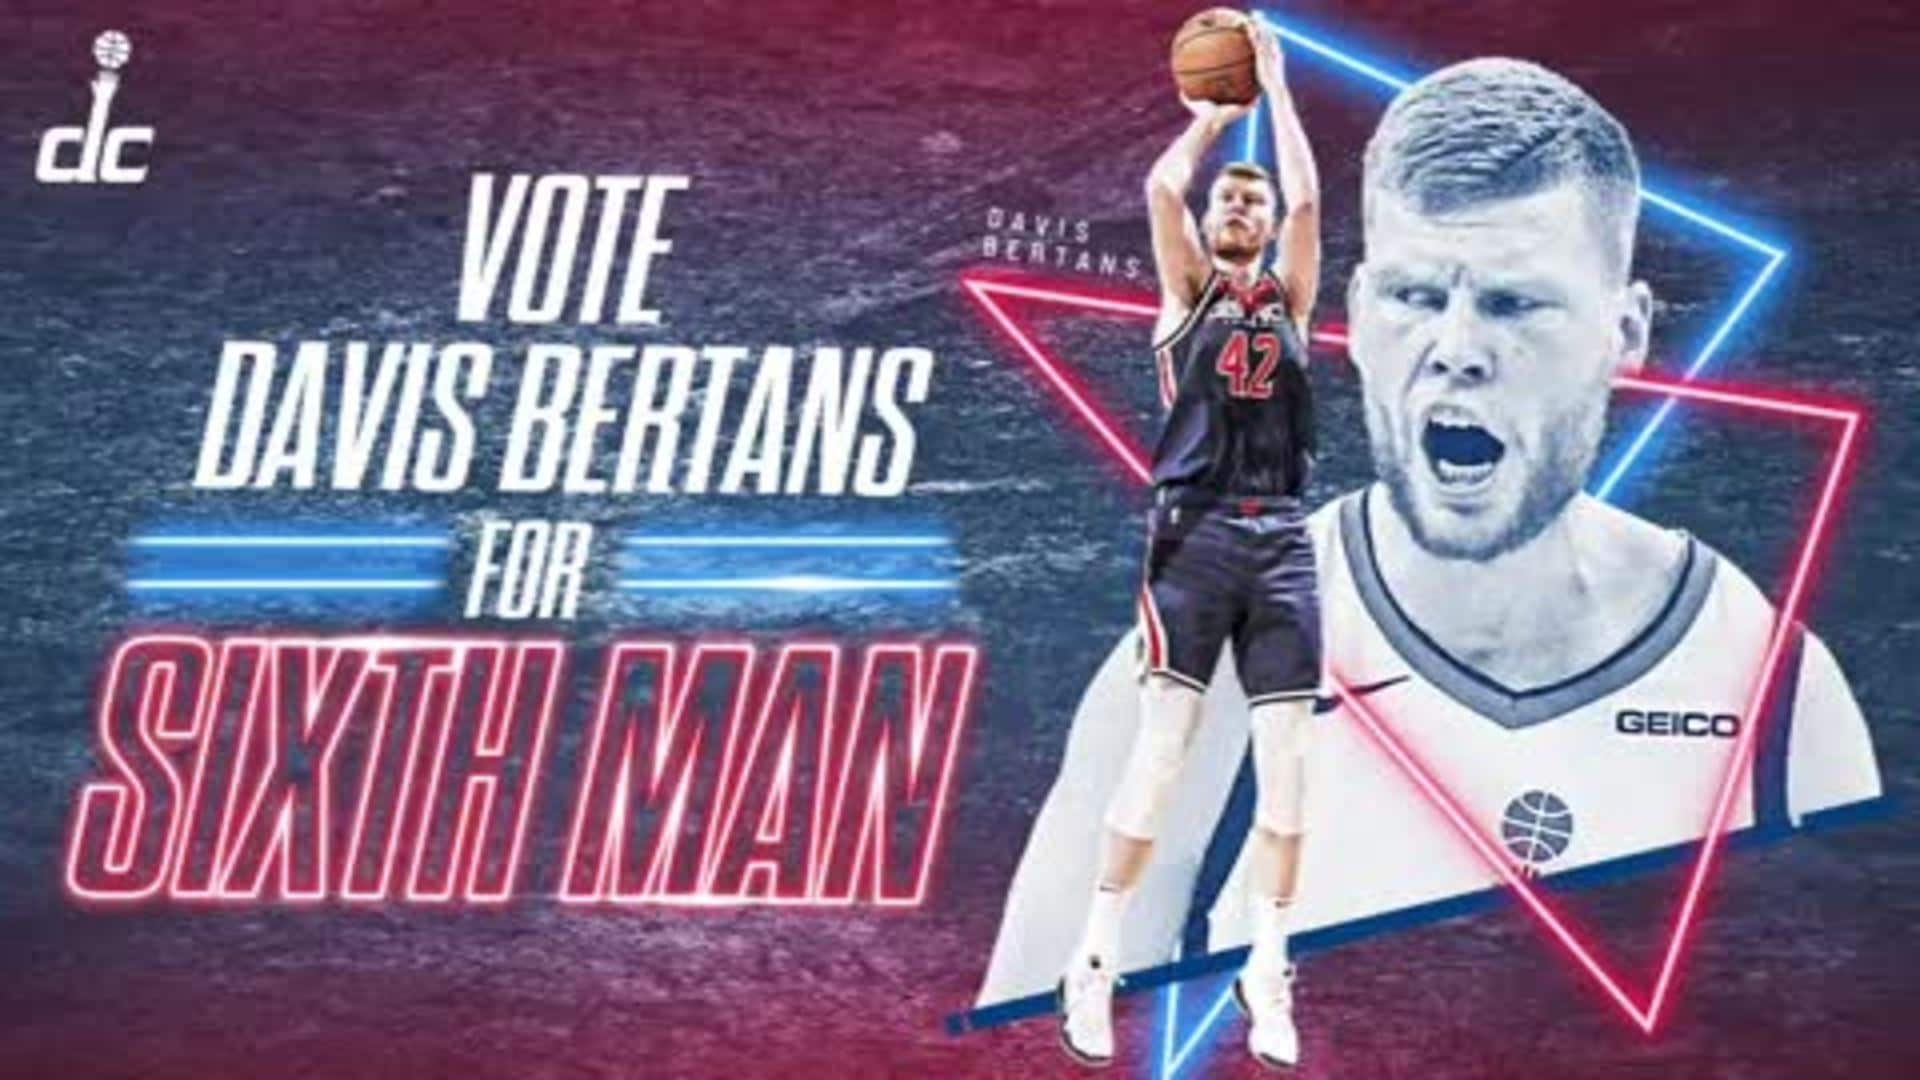 Davis Bertans for Sixth Man of the Year 2019-20